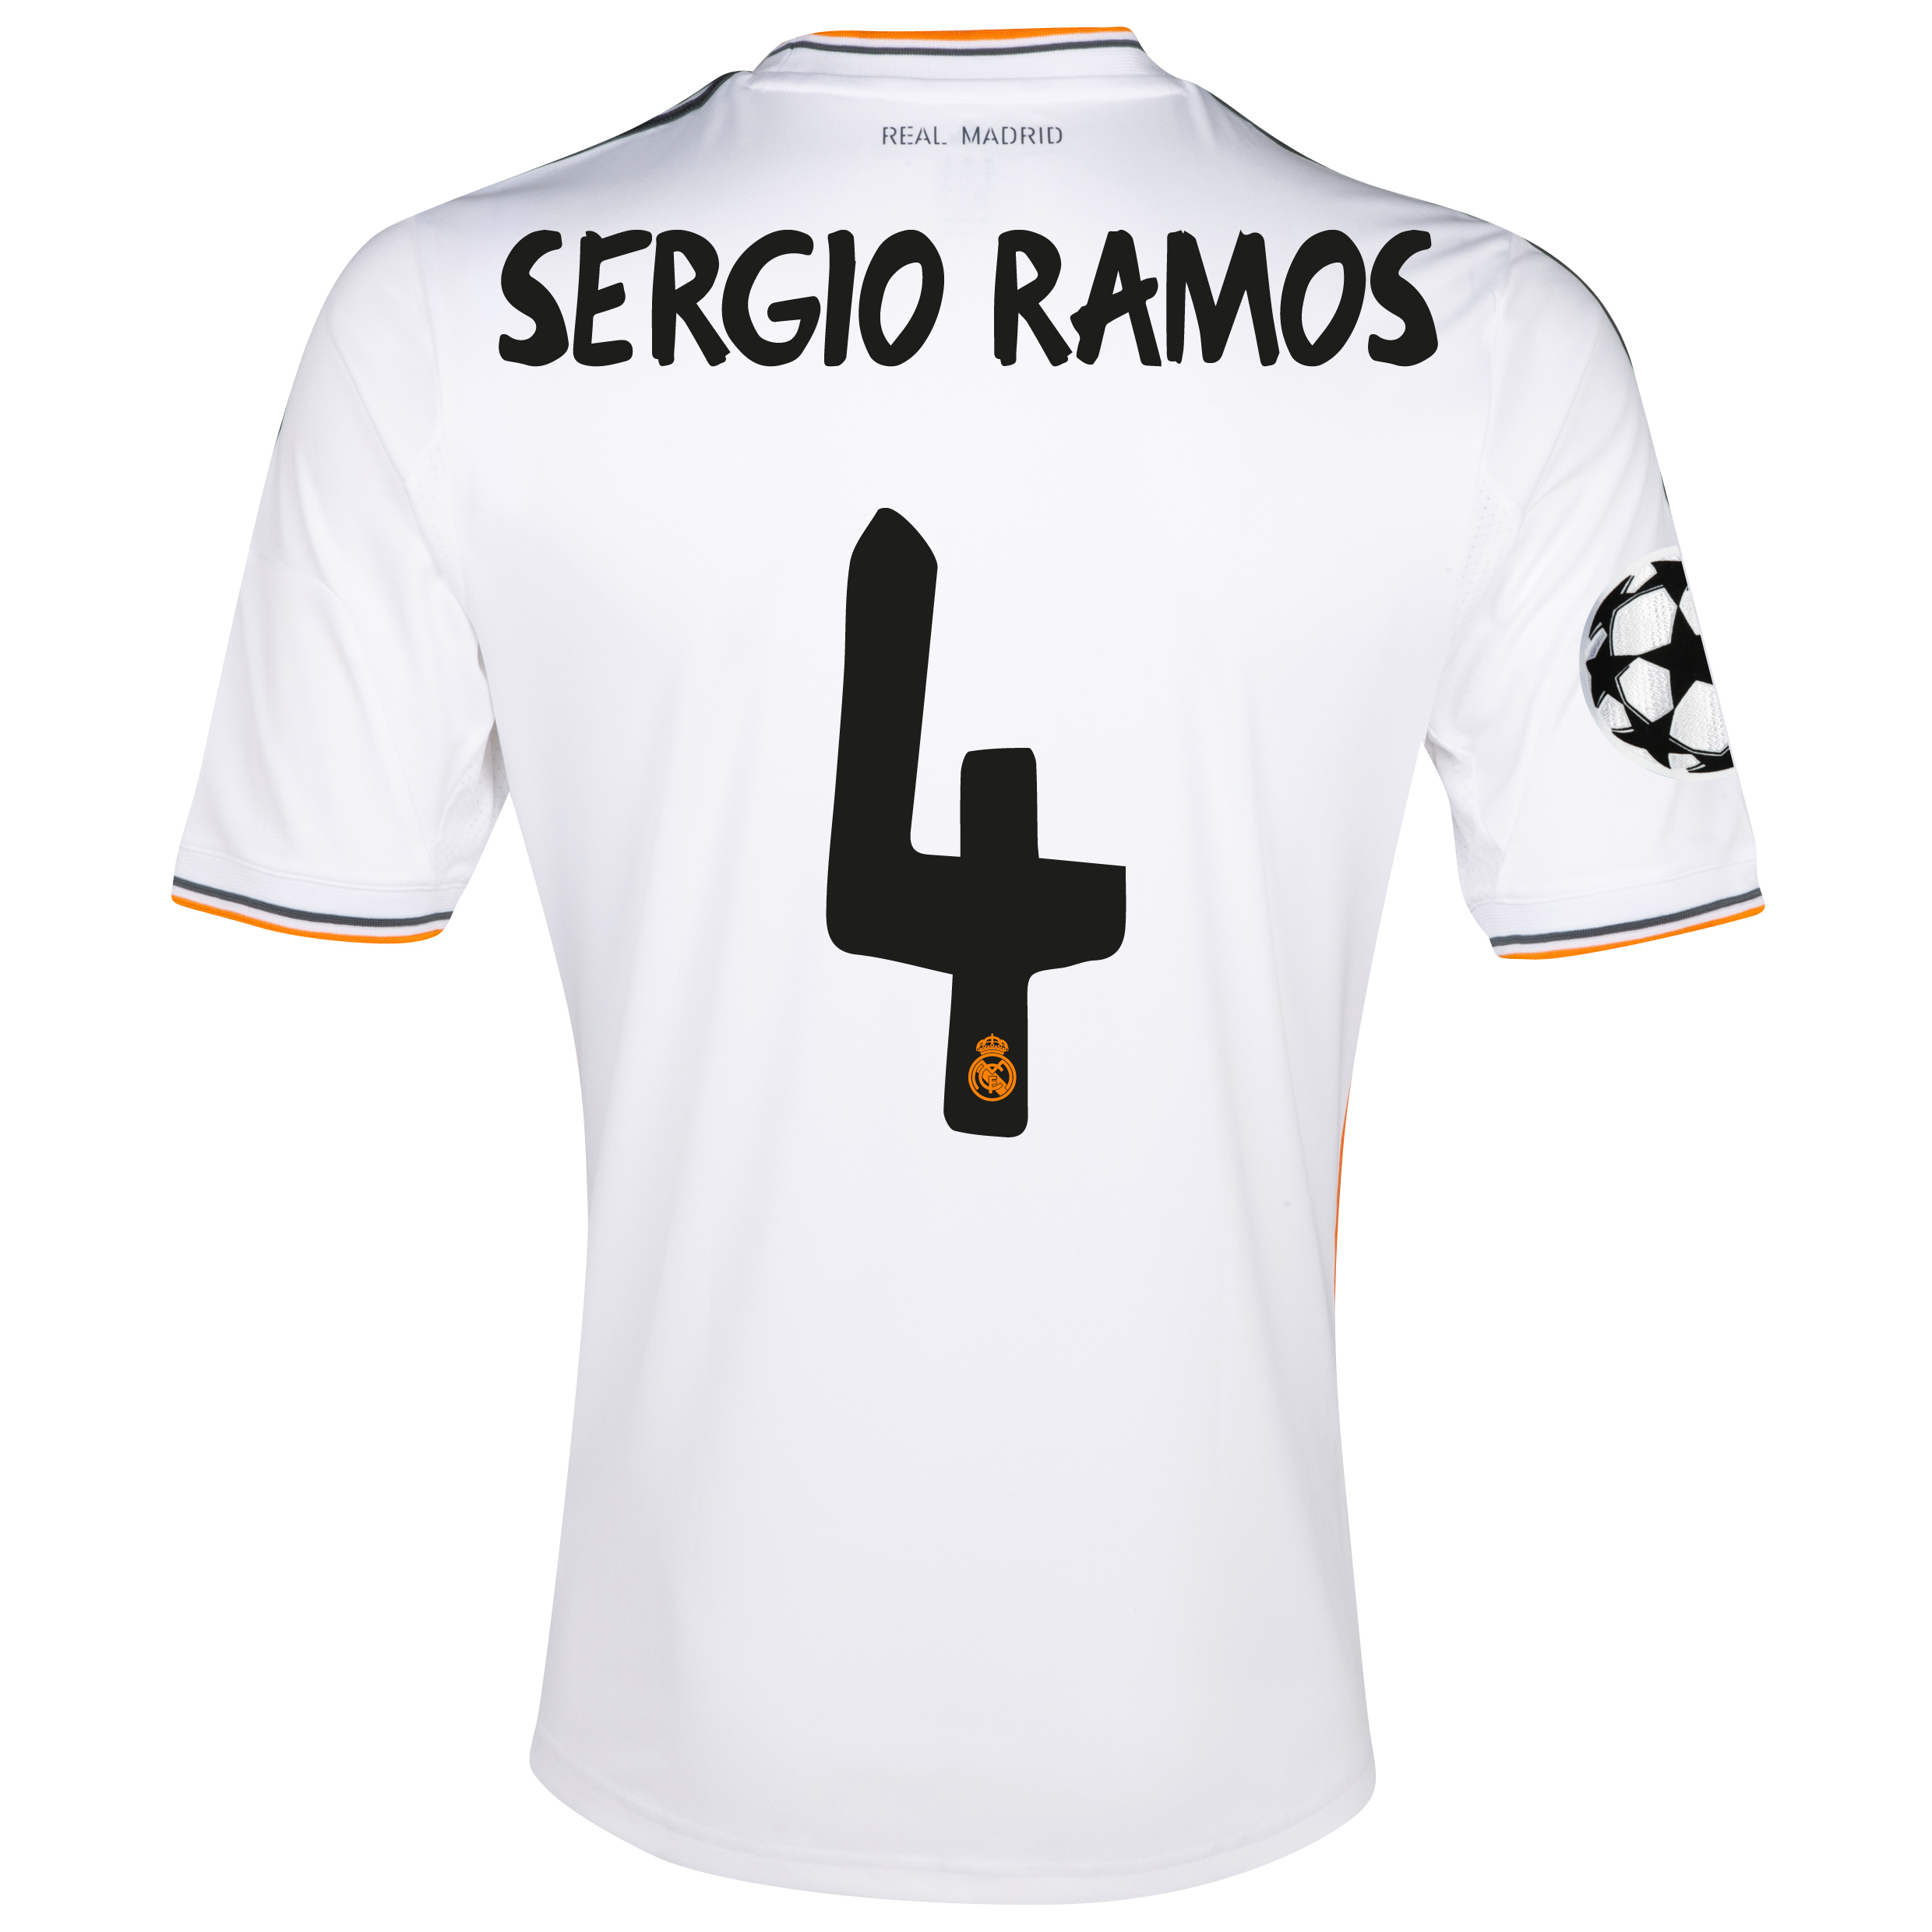 Real Madrid UEFA Champions League Home Shirt 2013/14 with Sergio Ramos 4 printing